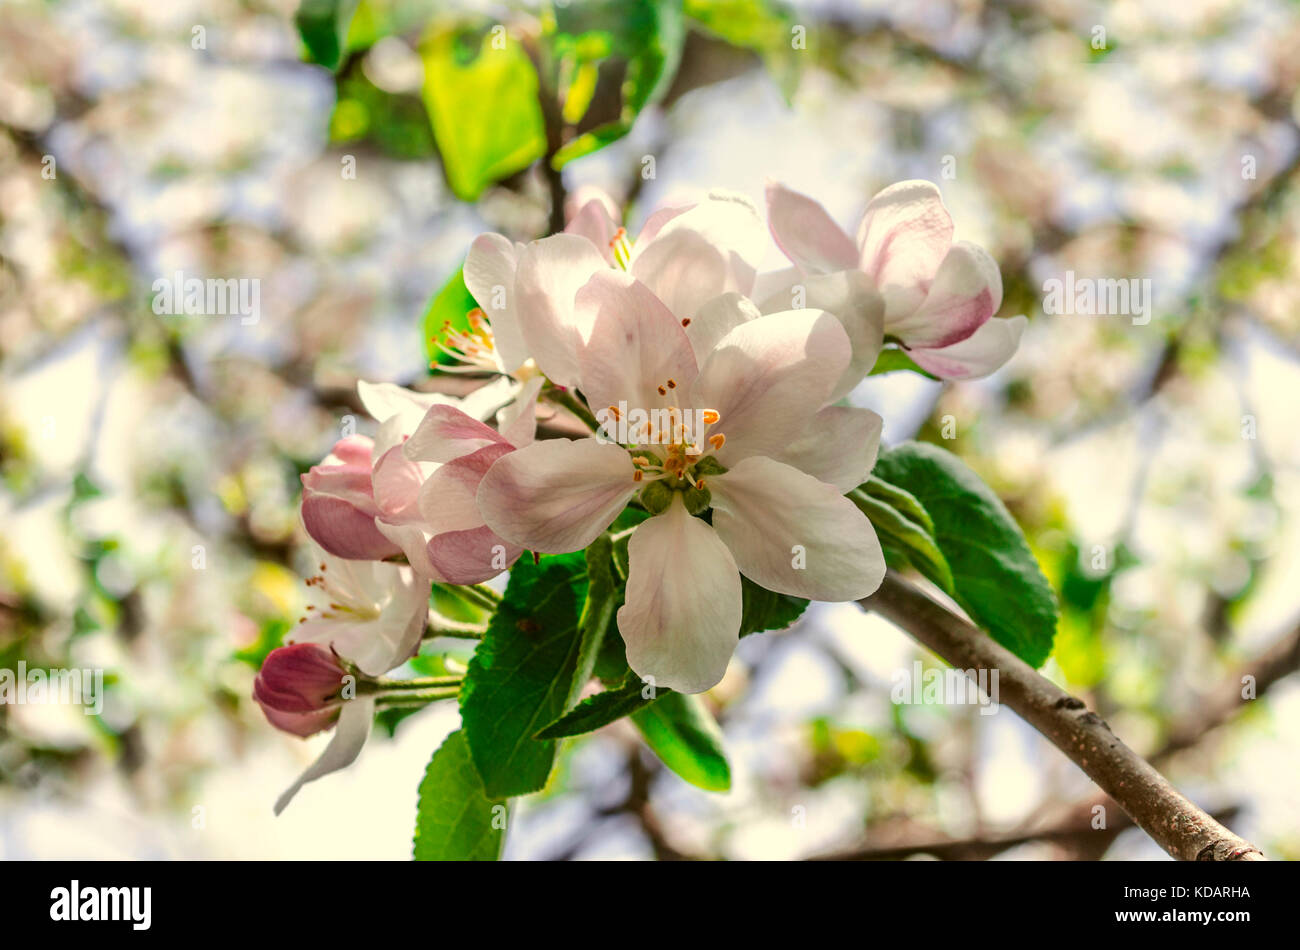 Apple Tree With Pink And White Buds Stock Photos Apple Tree With